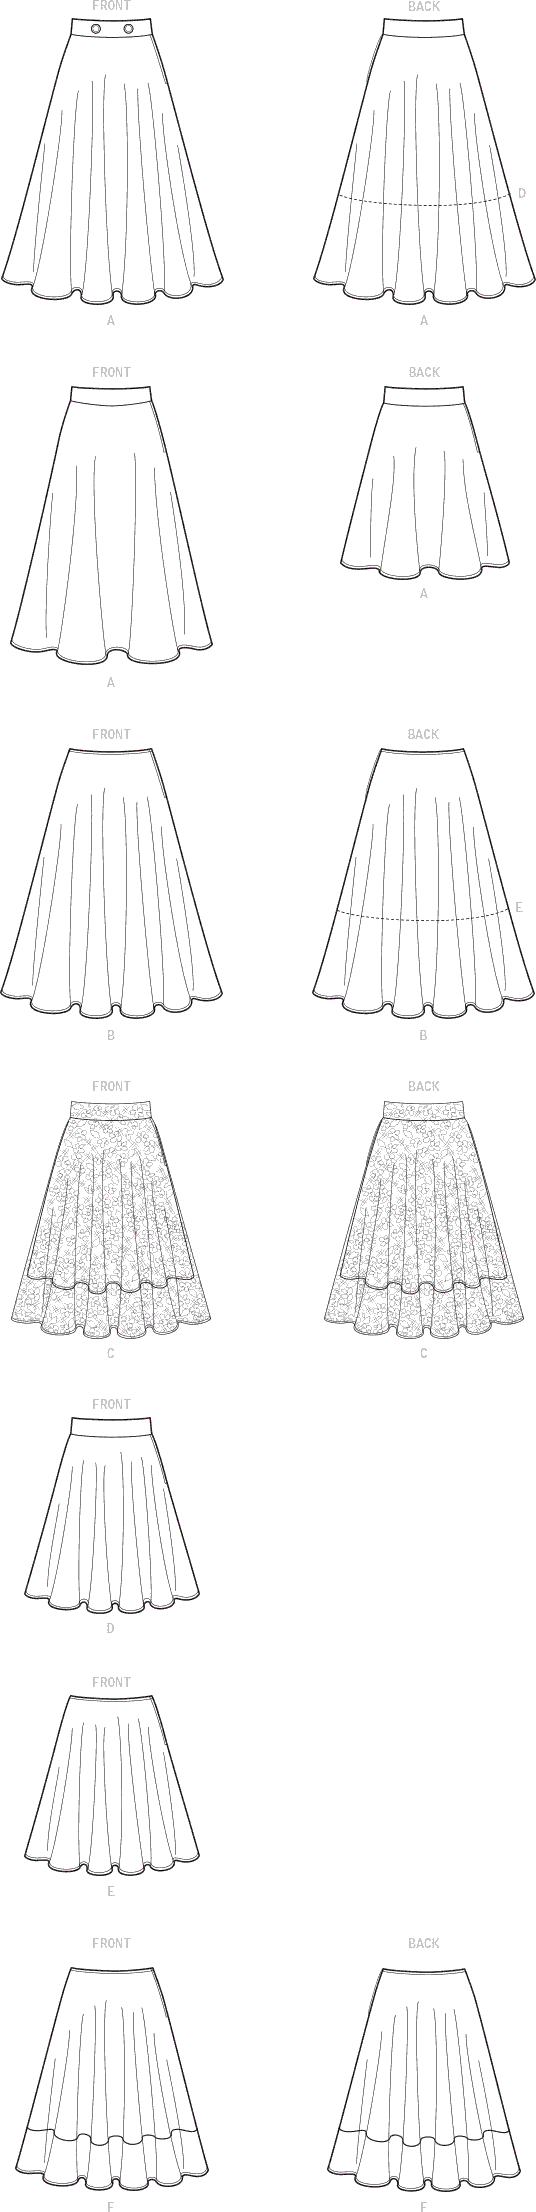 Simplicity Sewing Pattern S9123 Misses Skirts 9123 Line Art From Patternsandplains.com